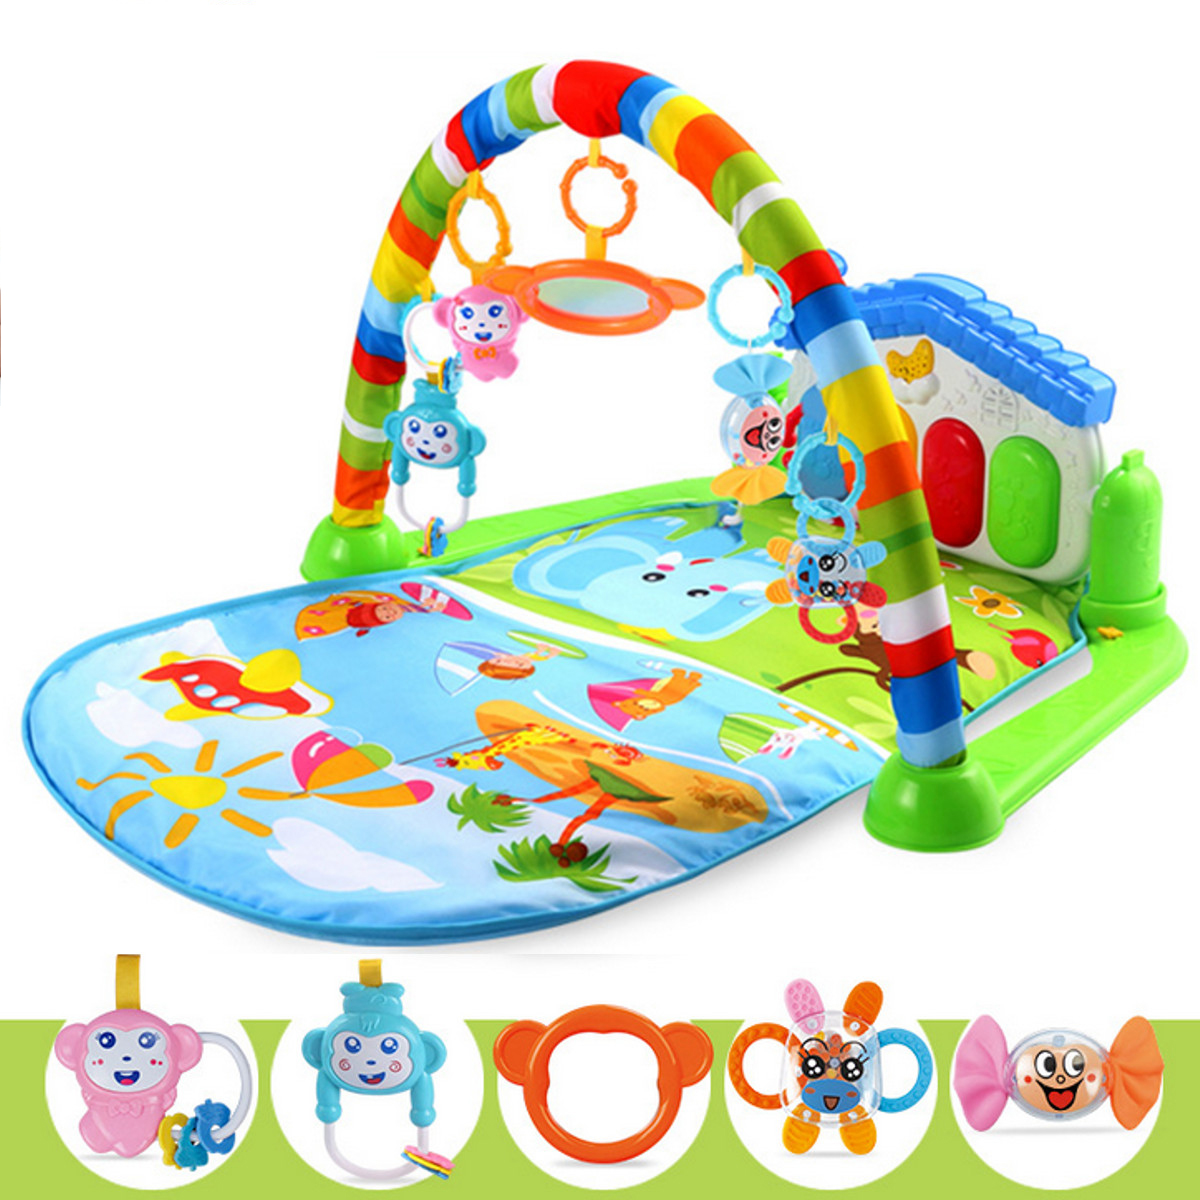 3 In 1 Baby Kid Playmat Play Musical Pedal Piano Activity Soft Fitness Gym Mat(Random Color)